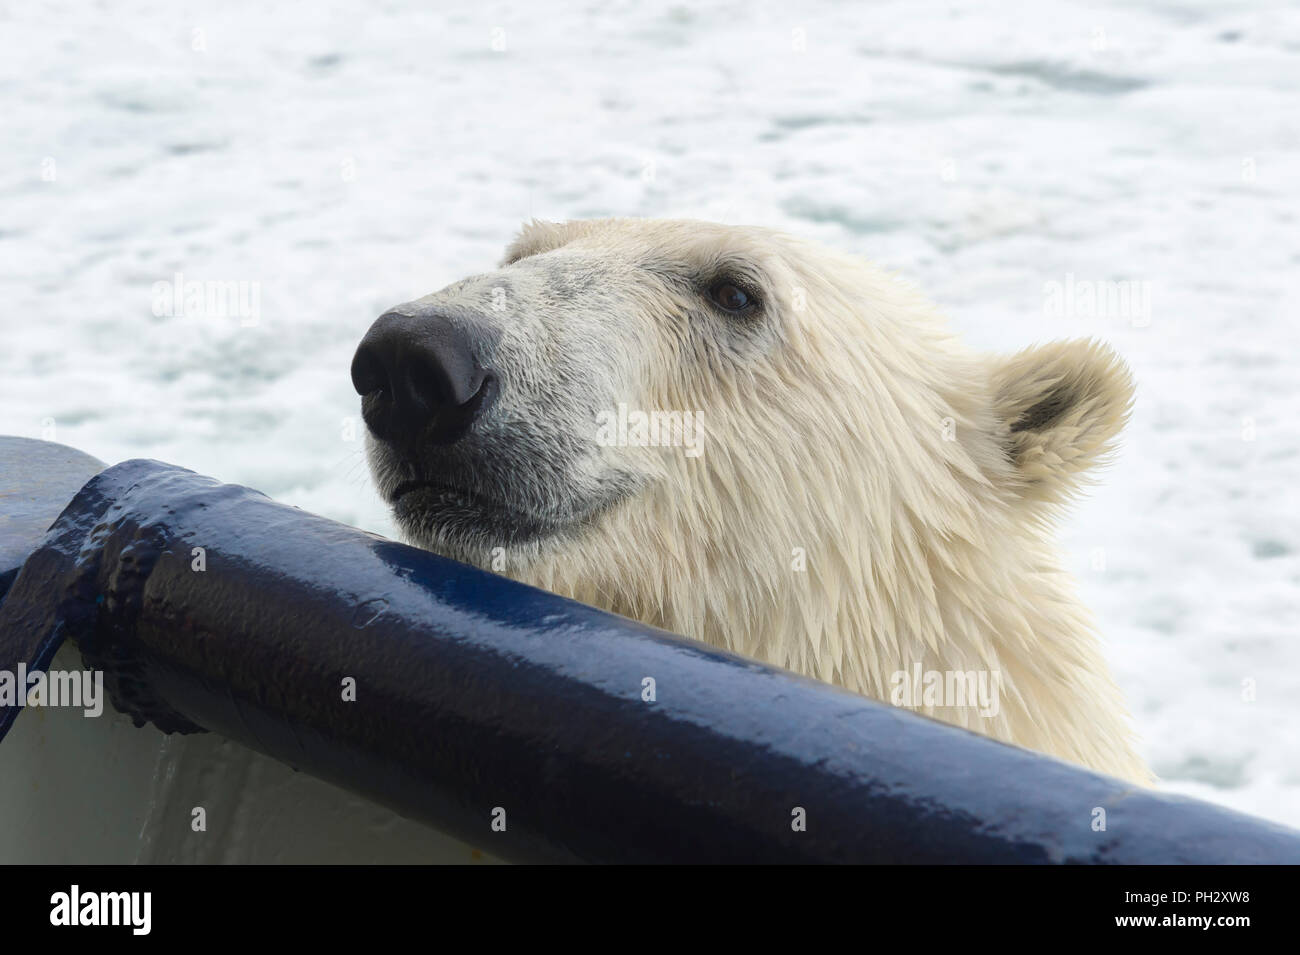 Polar Bear (Ursus maritimus) trying to climb an expedition ship, Svalbard Archipelago, Norway - Stock Image